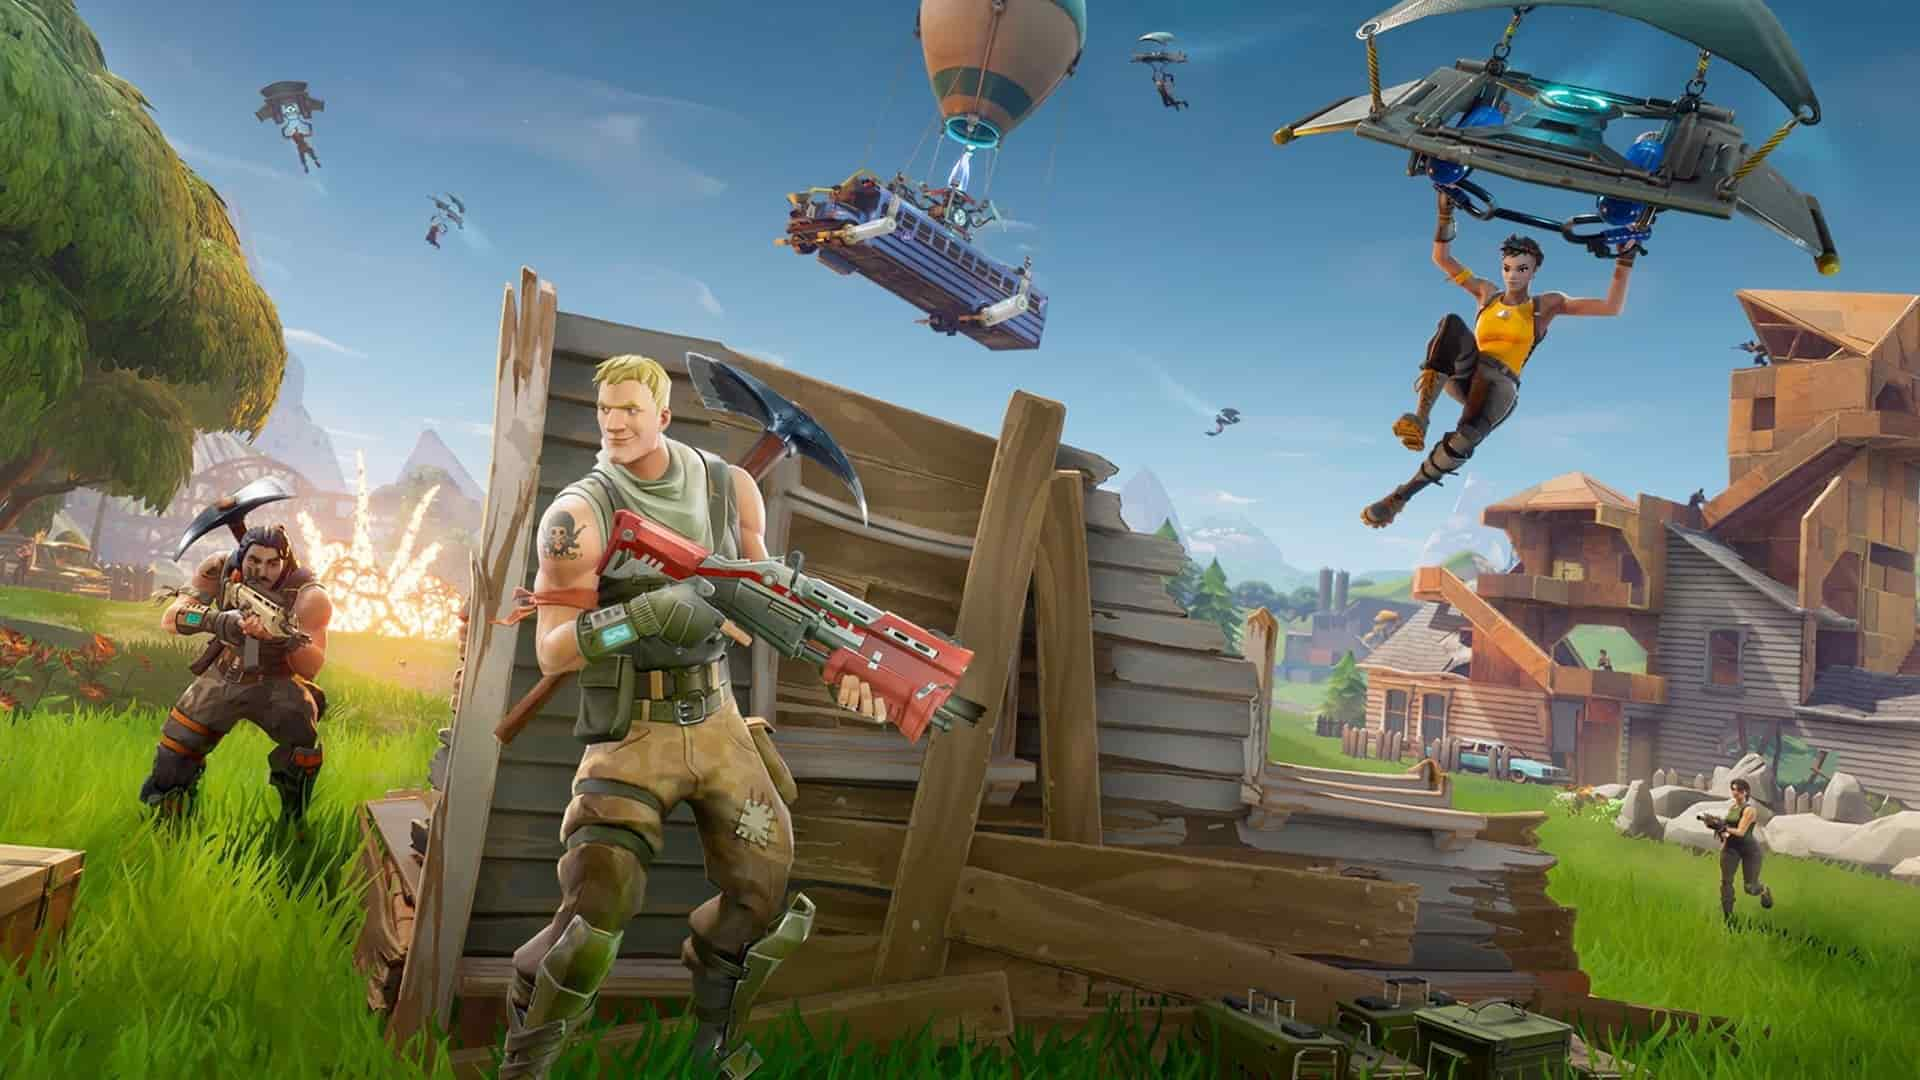 Fortnite Week 10 Challenges Leaked Early, Here's What You Need to Do